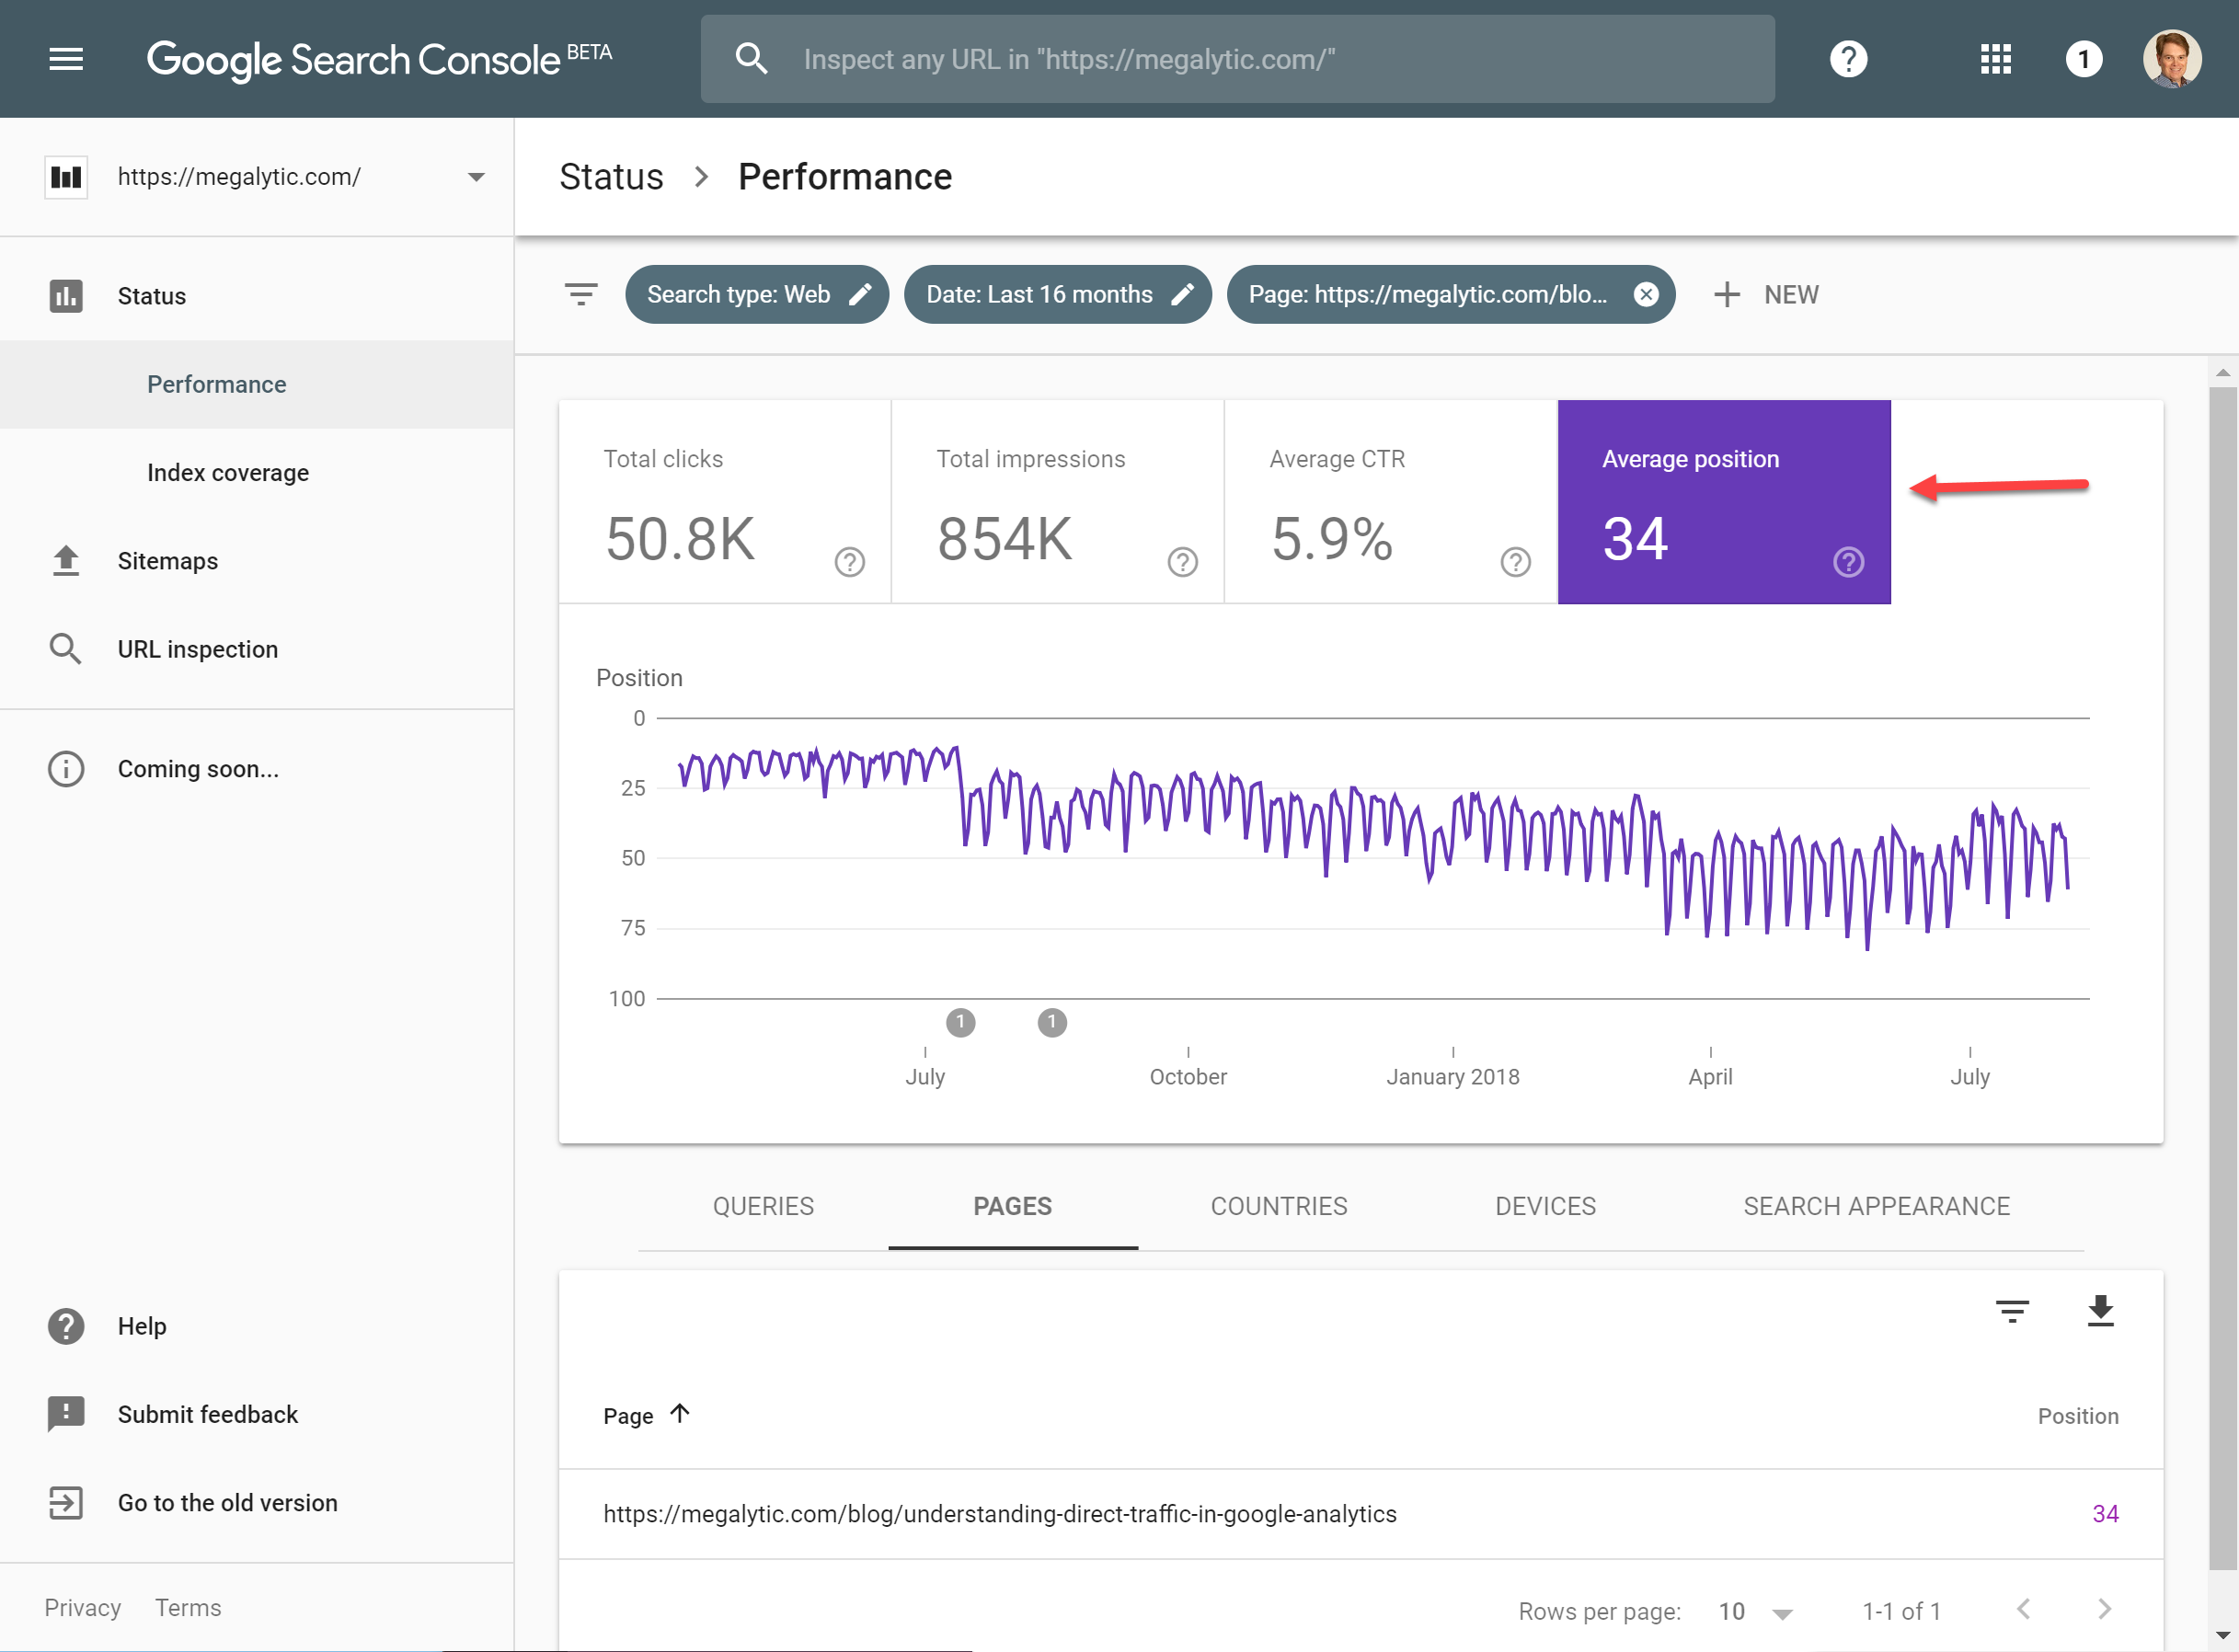 Google Search Console Data That Agencies Should Share With